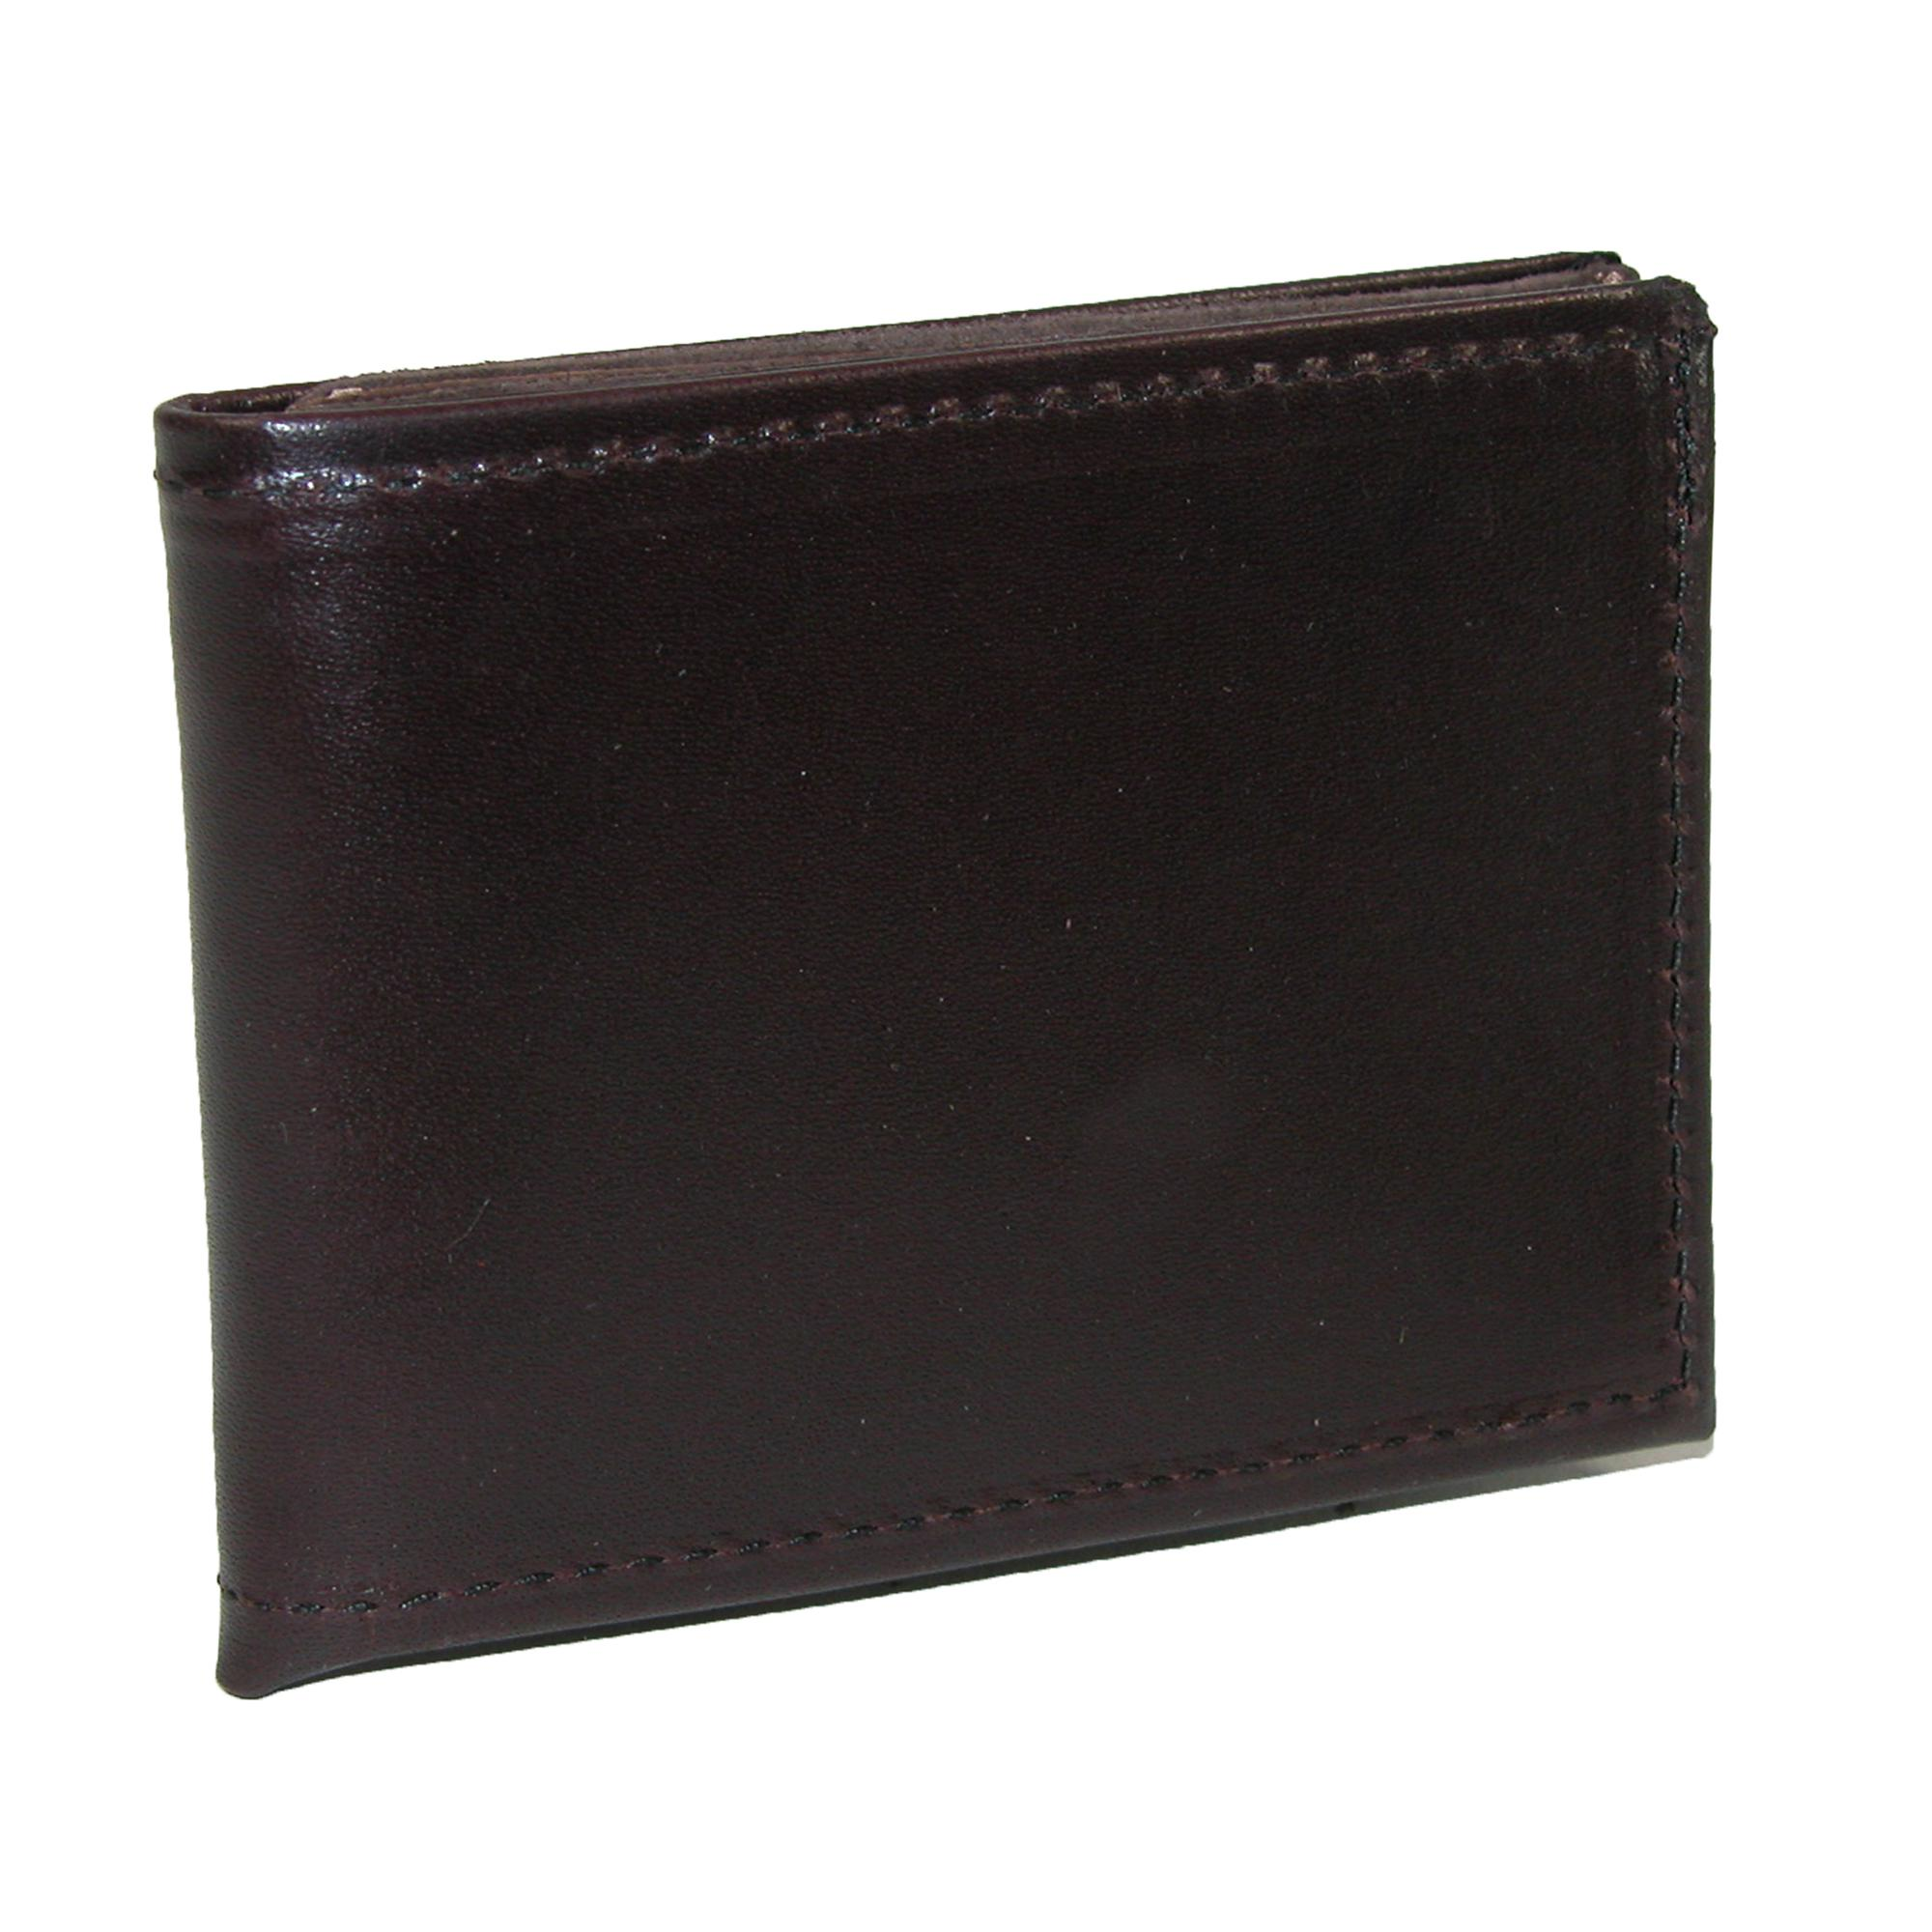 Boston Leather Men's Smooth Leather Billfold Wallet